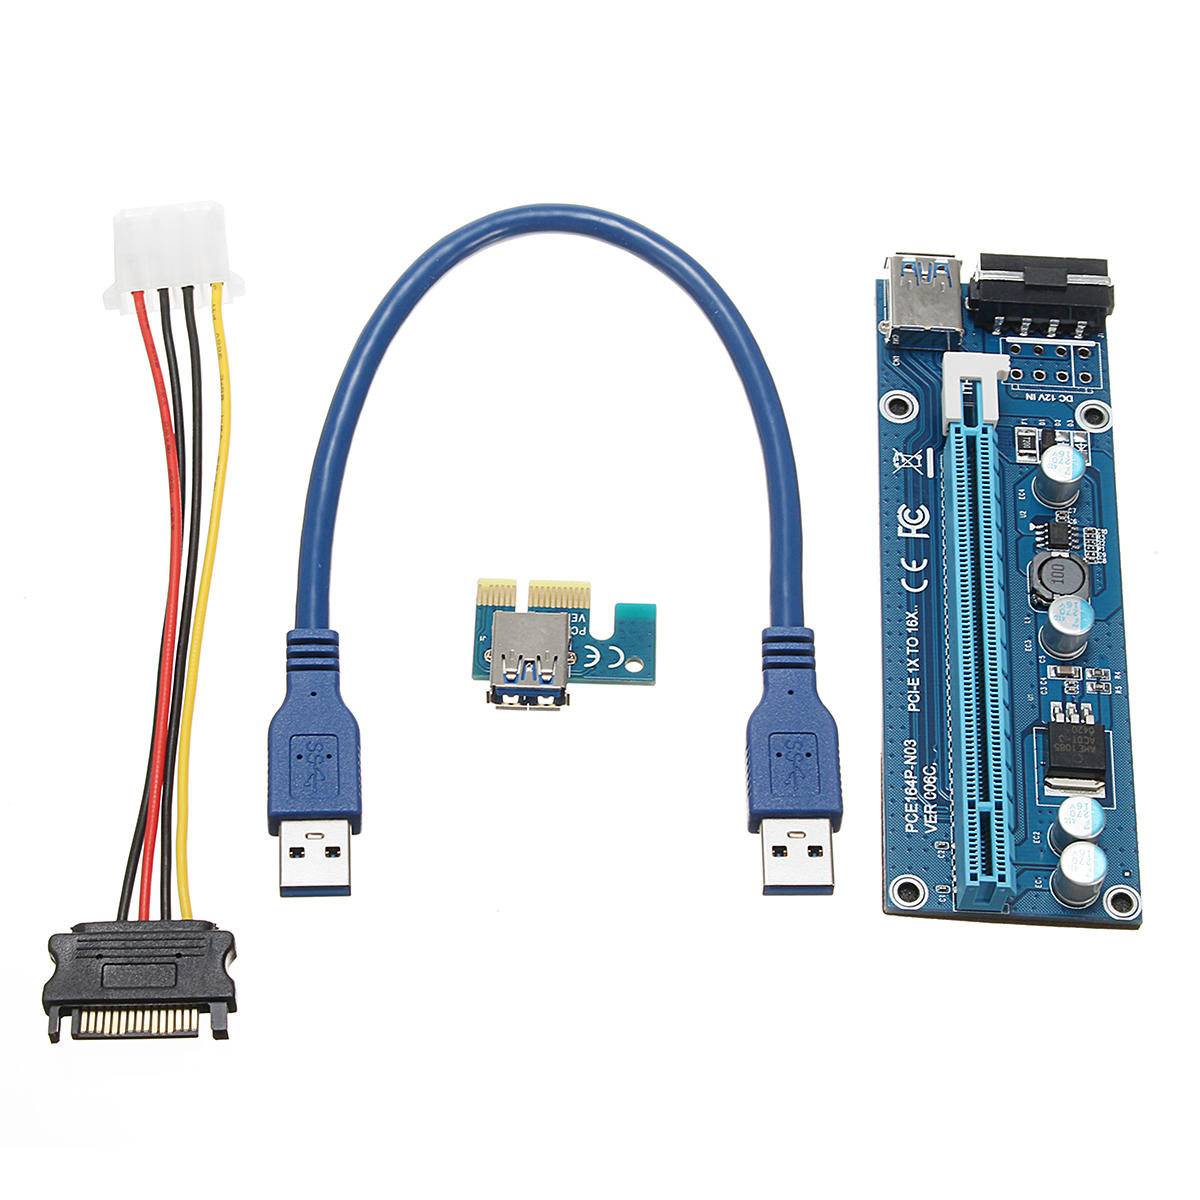 0.3m DC To DC USB 3.0 PCI Express 1x To 16x Extension Cable Extender Riser Adapter Card